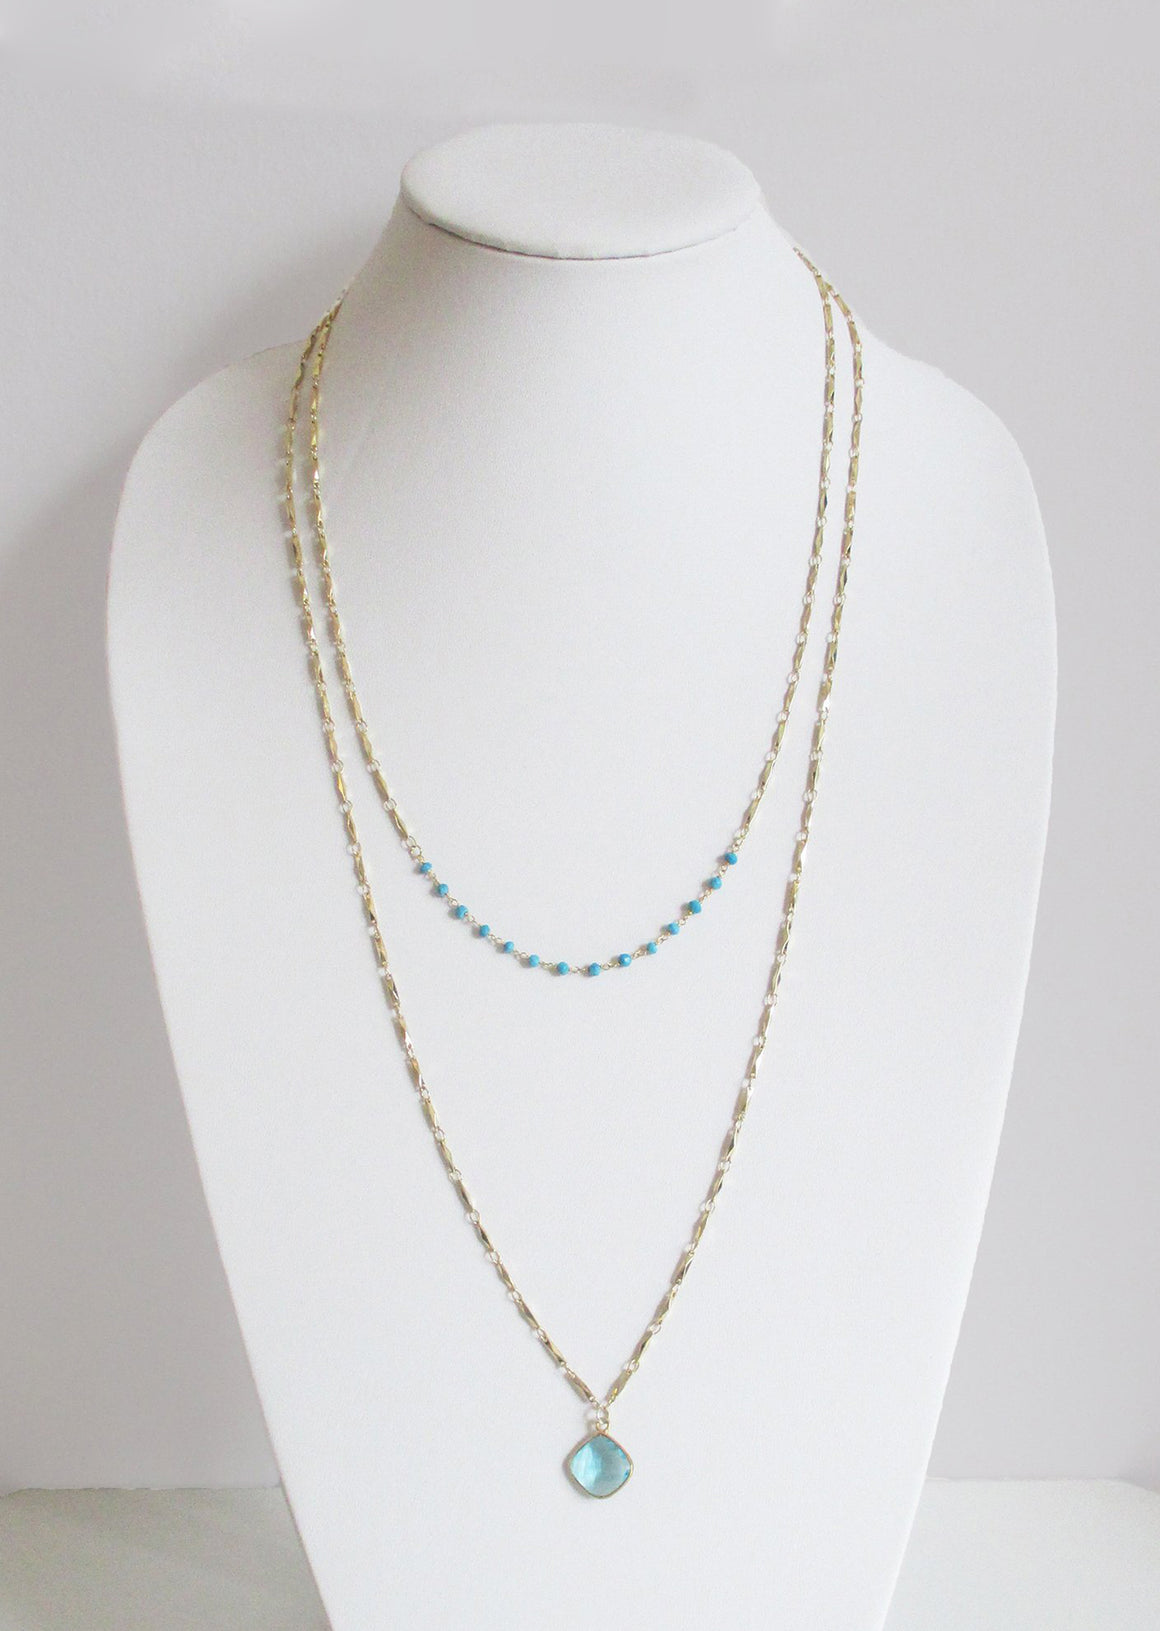 MARNA NECKLACE TURQUOISE & WHITE OPAL COMBO